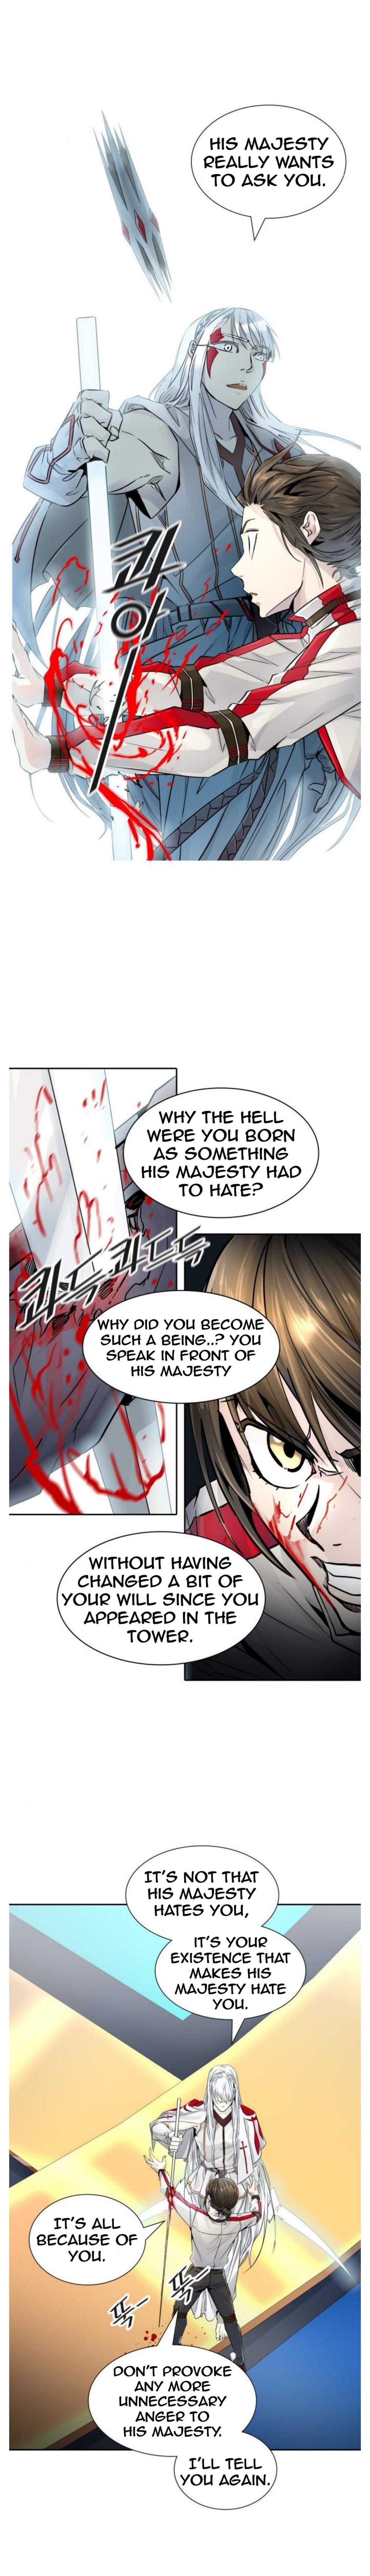 tower of god: Chapter 498 - Page 2